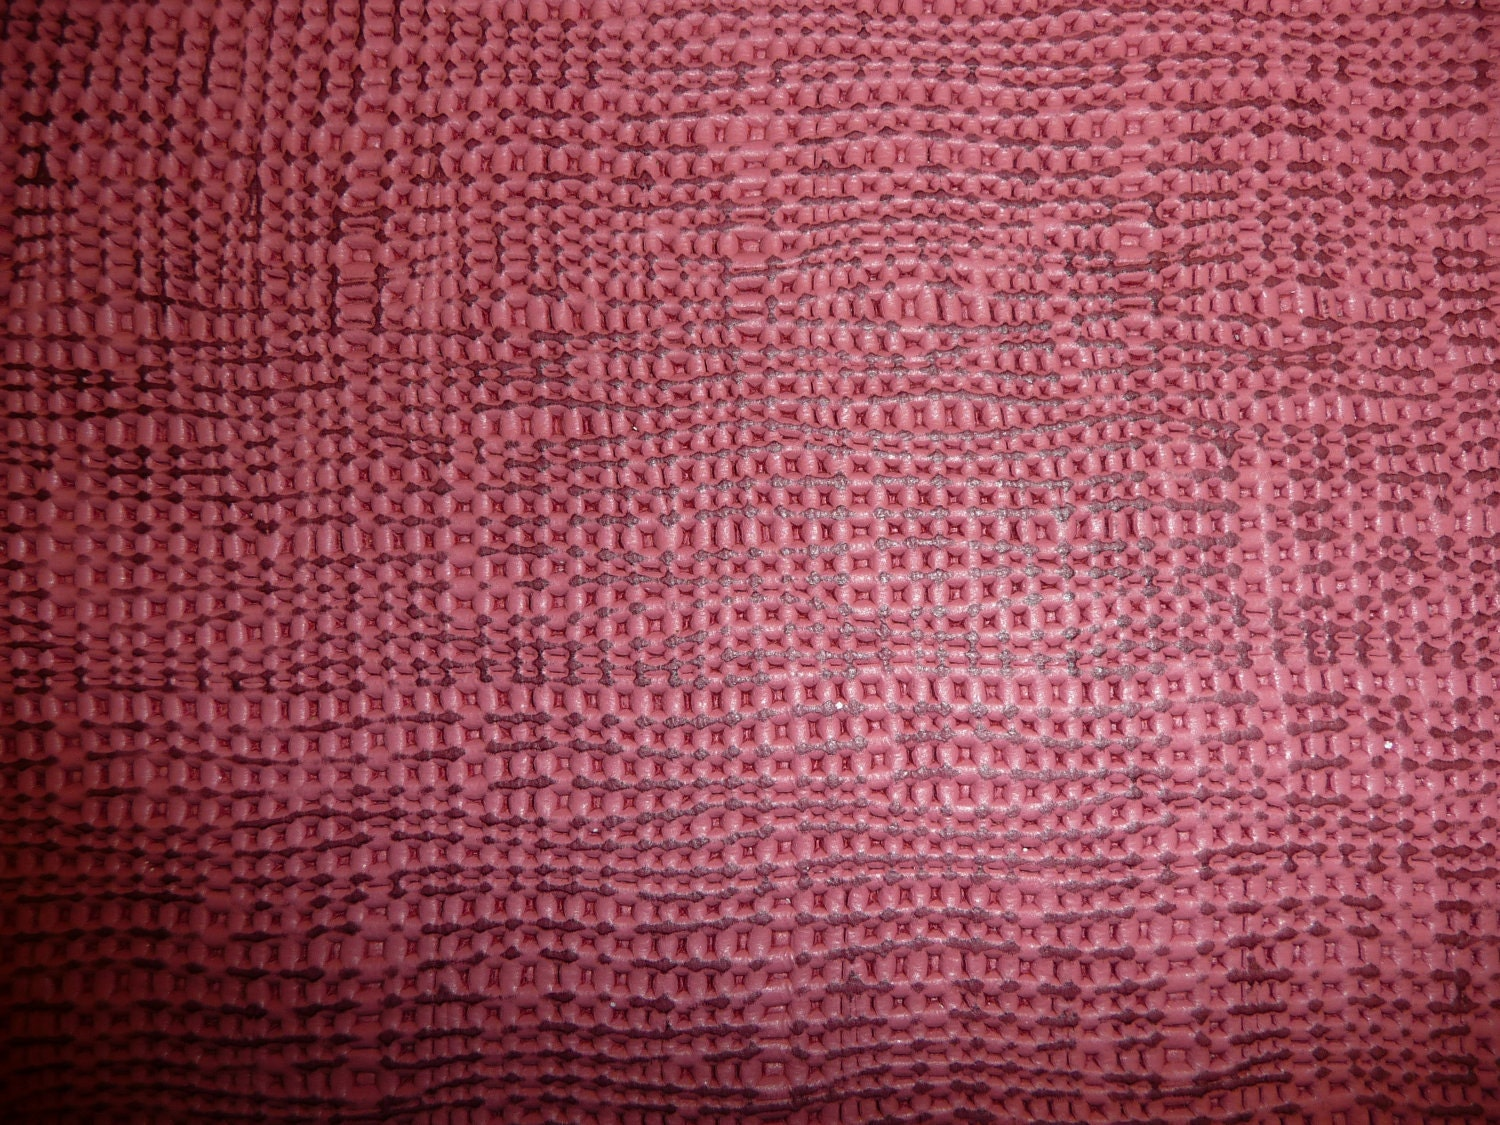 Basket Weave Pattern On Leather : Leather quot x tango pink burlap basket weave pattern